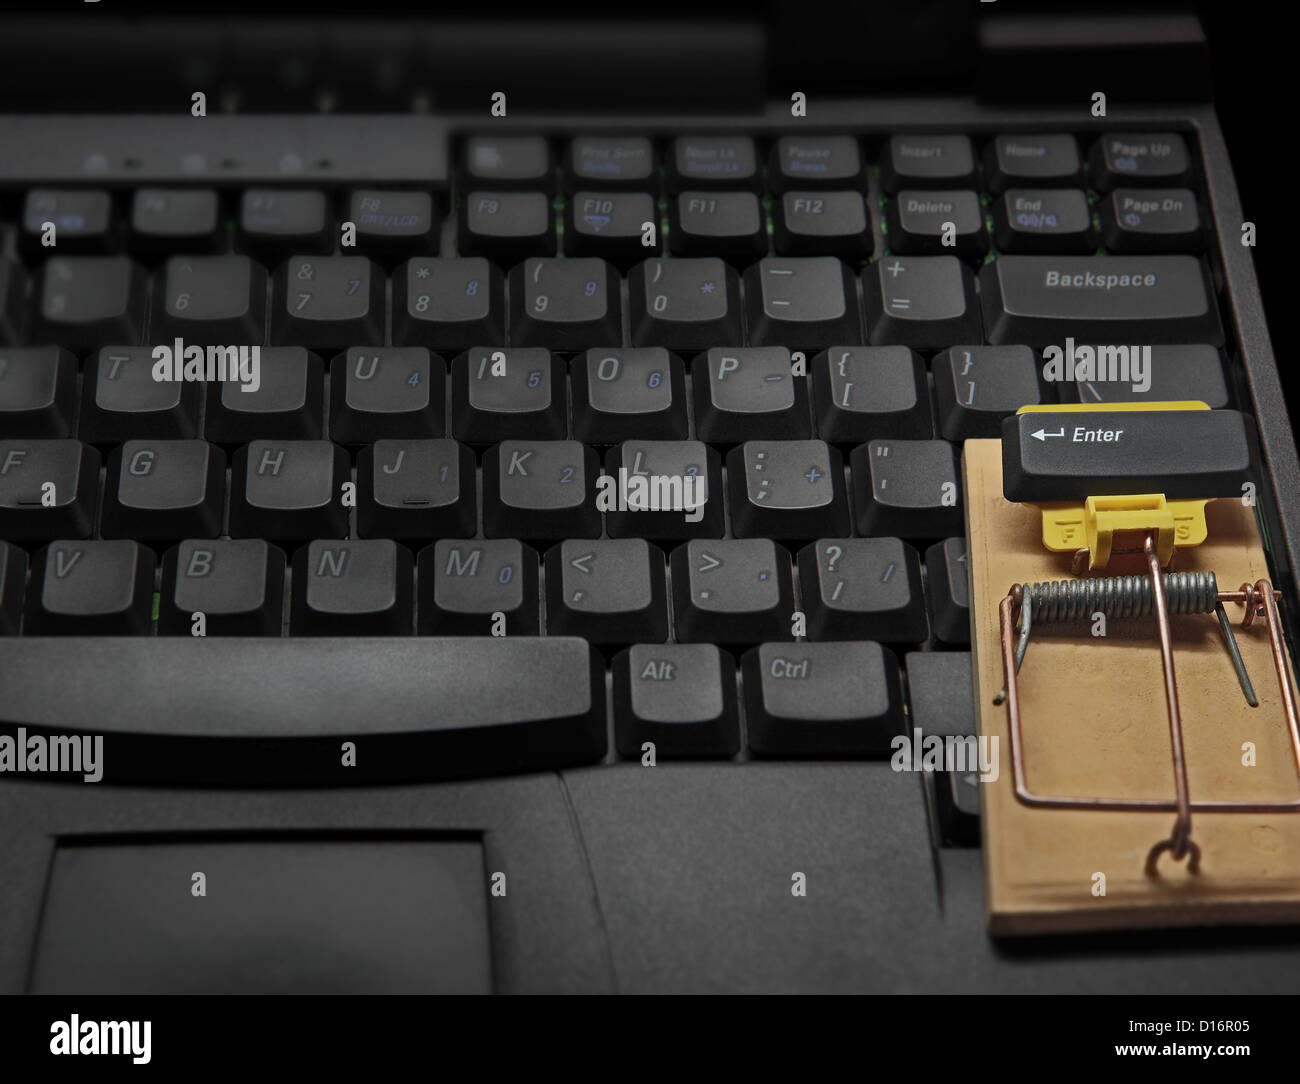 on the computer keyboard we see a mousetrap. Bad luck to those who will press the ENTER key with his or her finger! - Stock Image